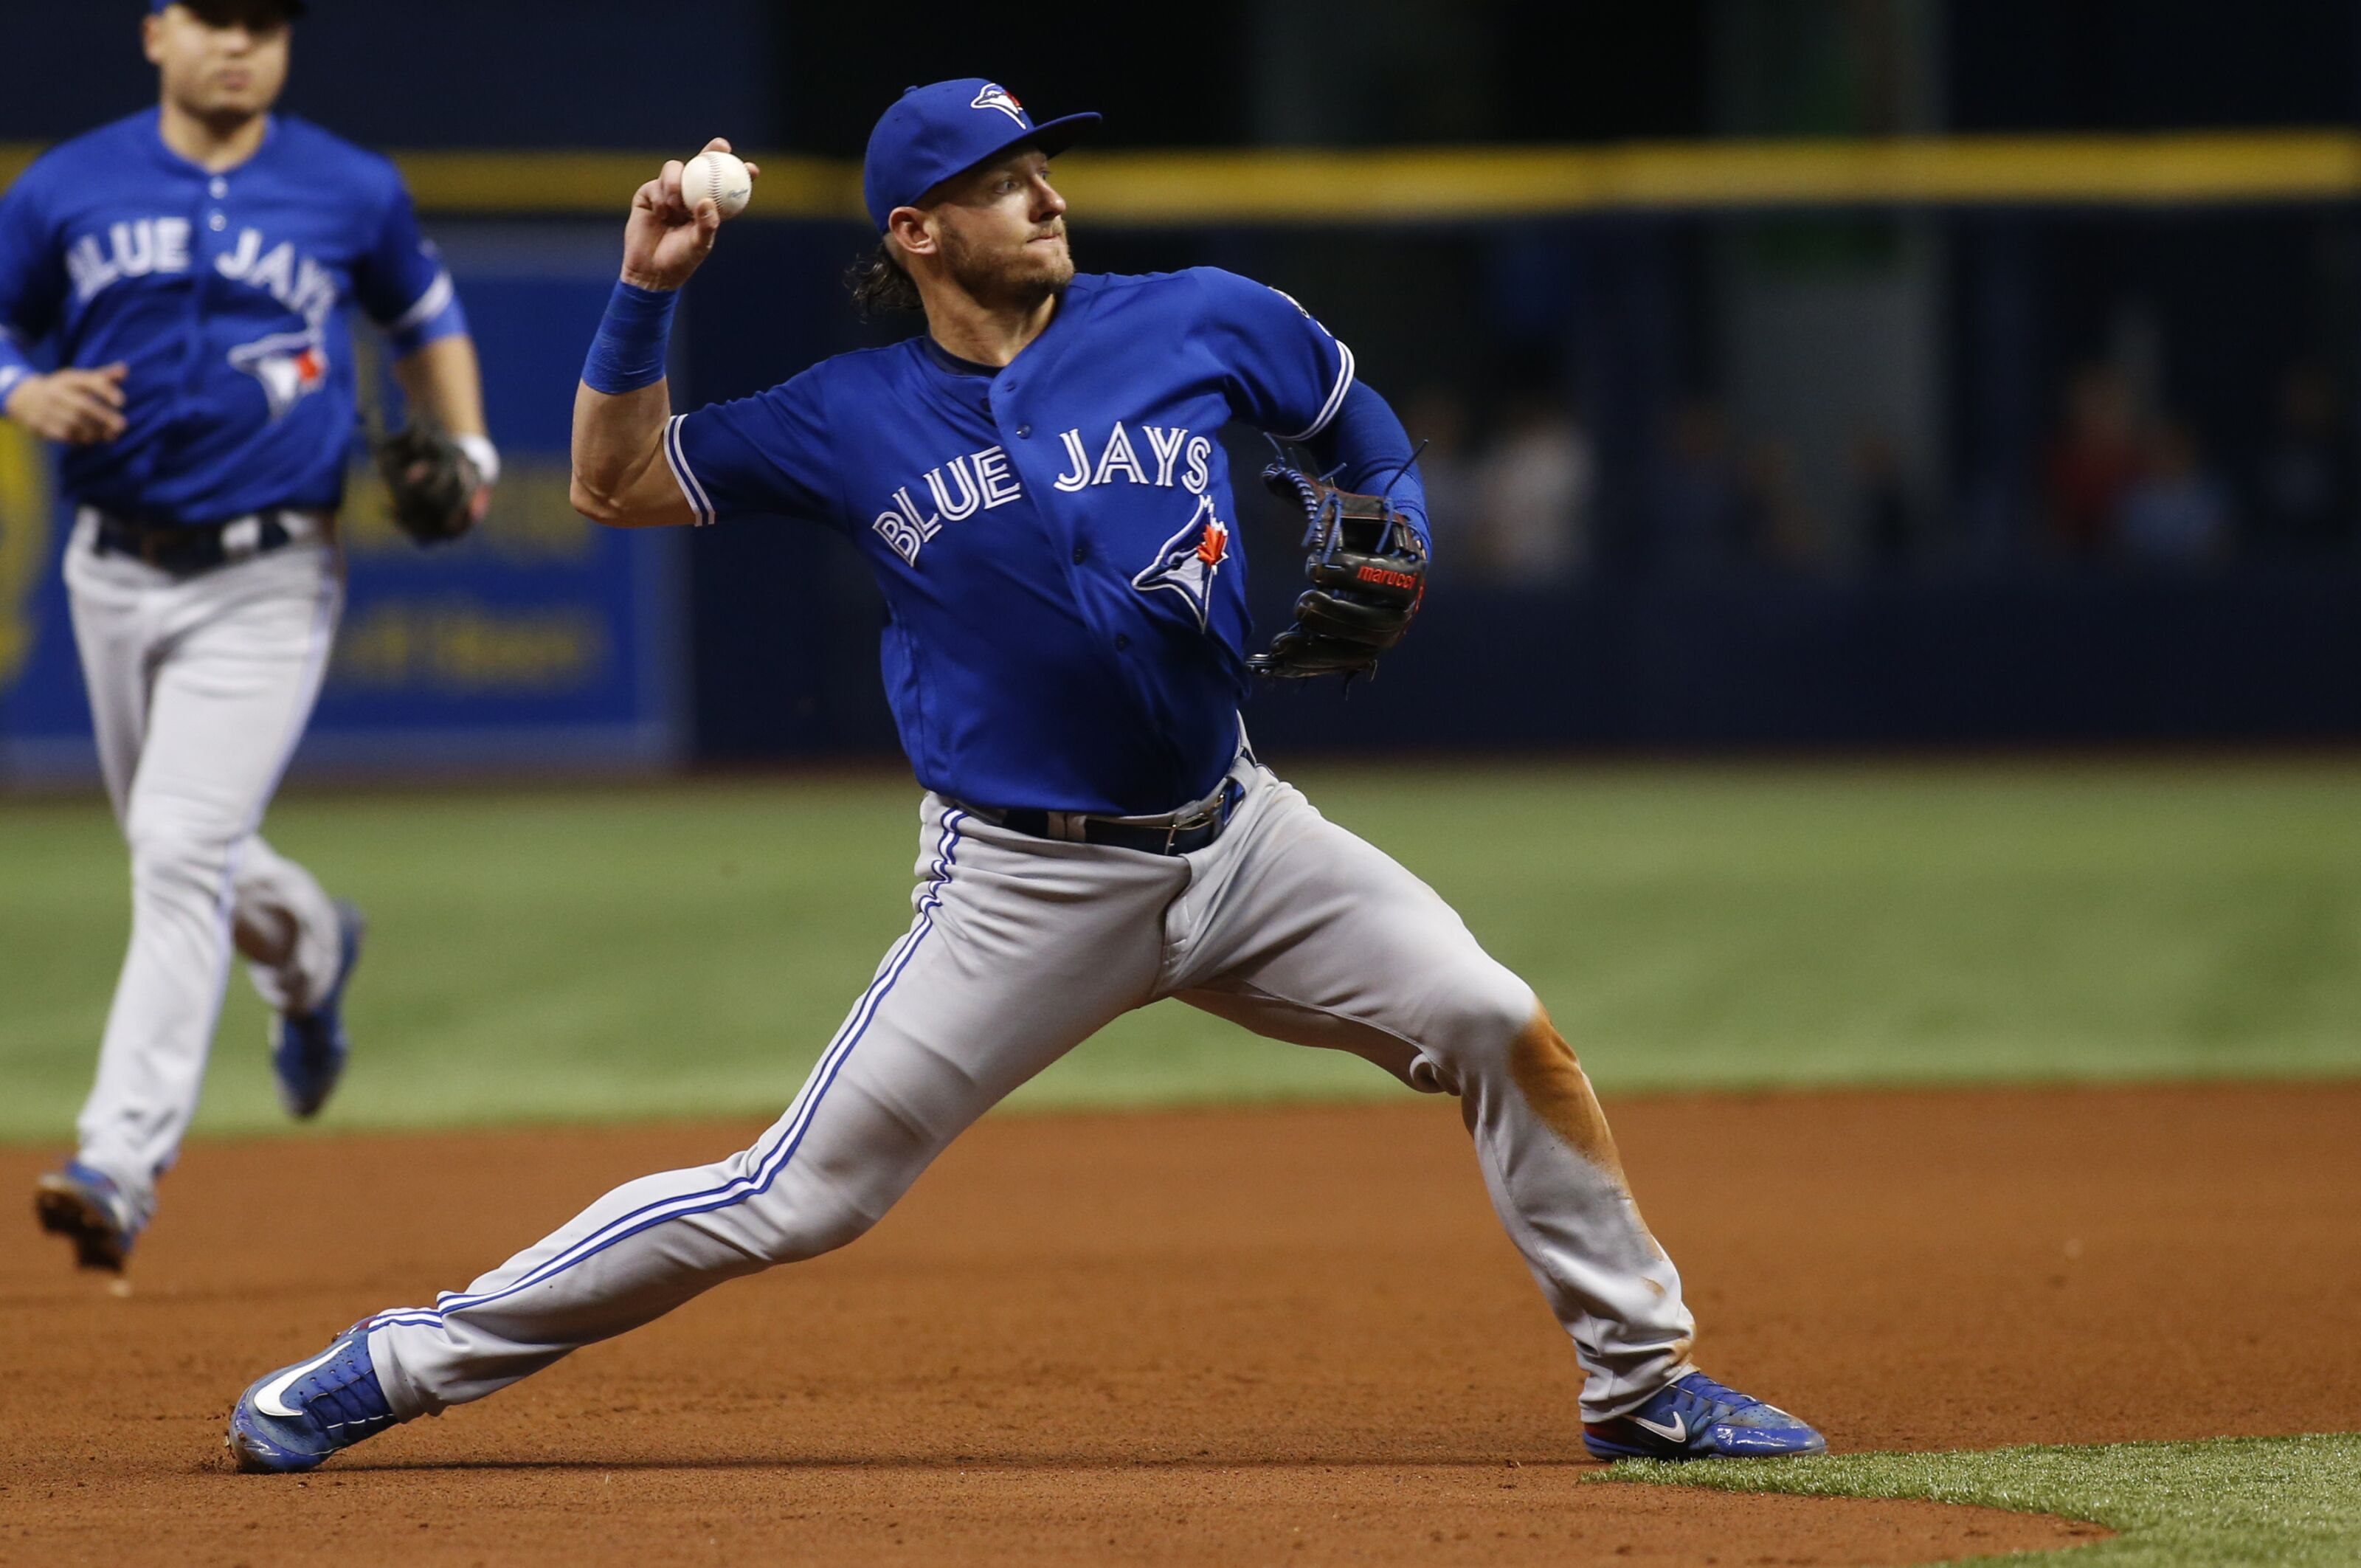 19f8bbd7 Blue Jays: It's a shame it ended this way with Josh Donaldson